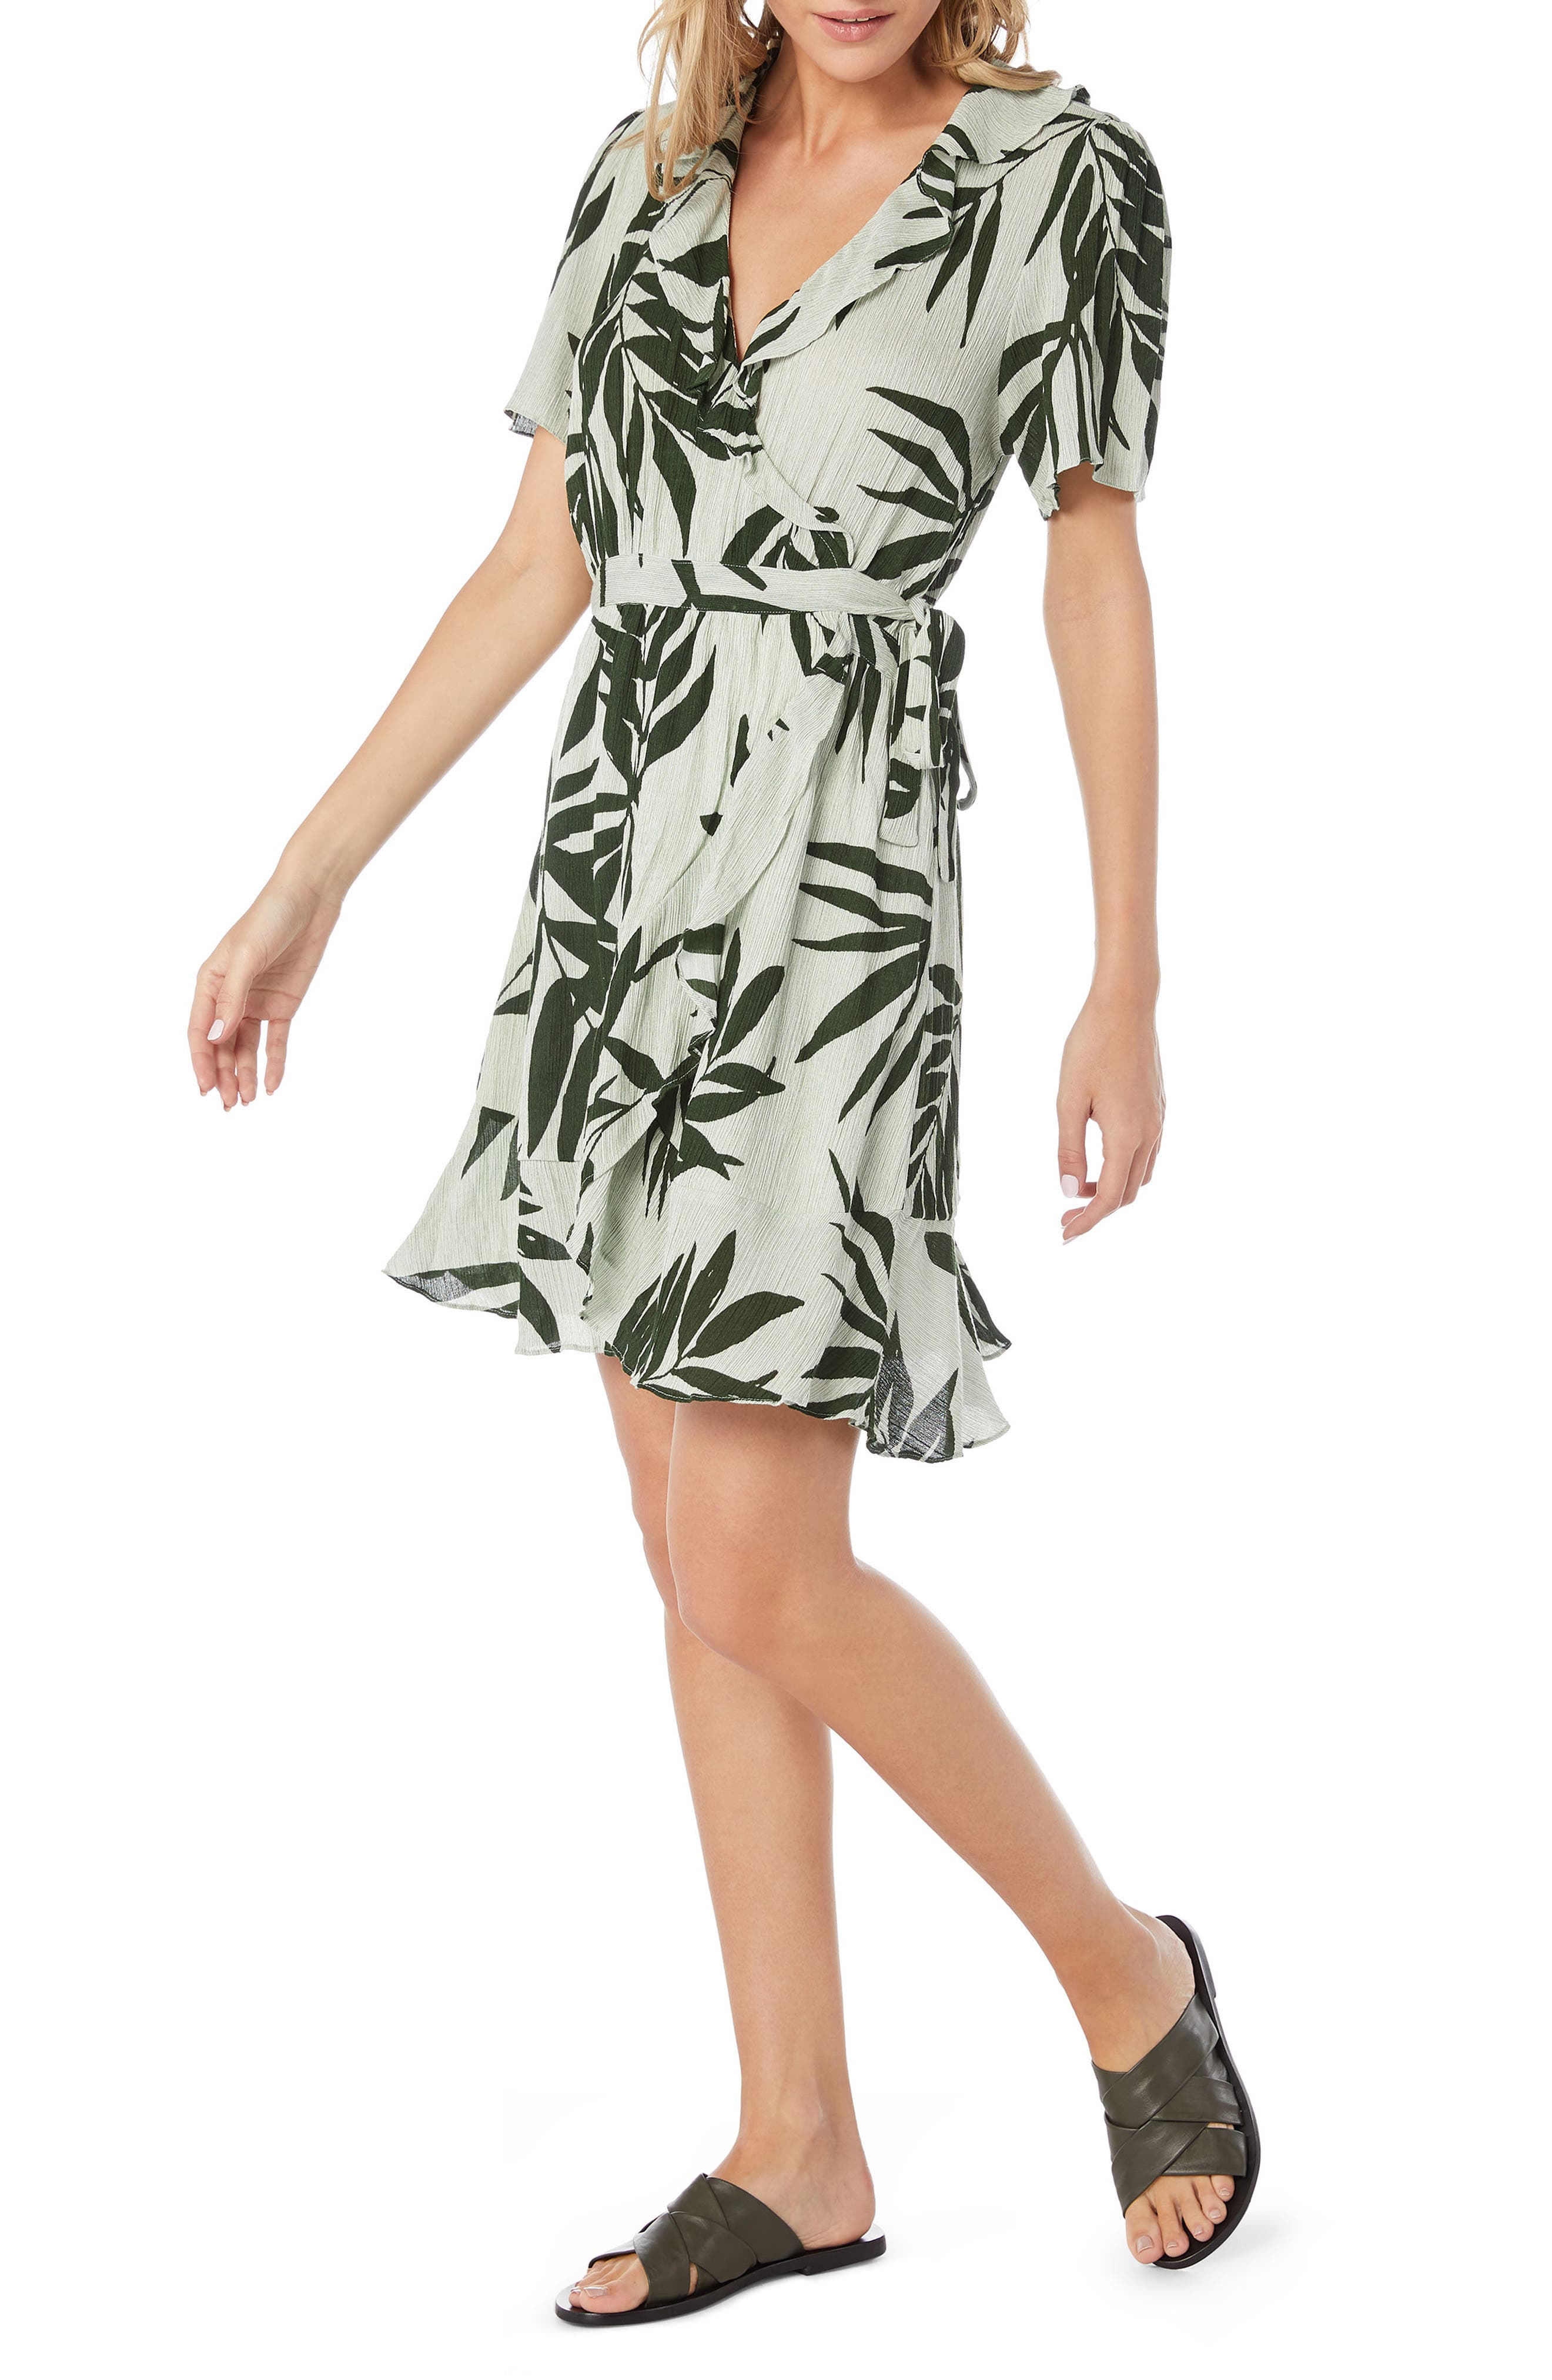 Paradiso Wrap Dress,                             Alternate thumbnail 3, color,                             340